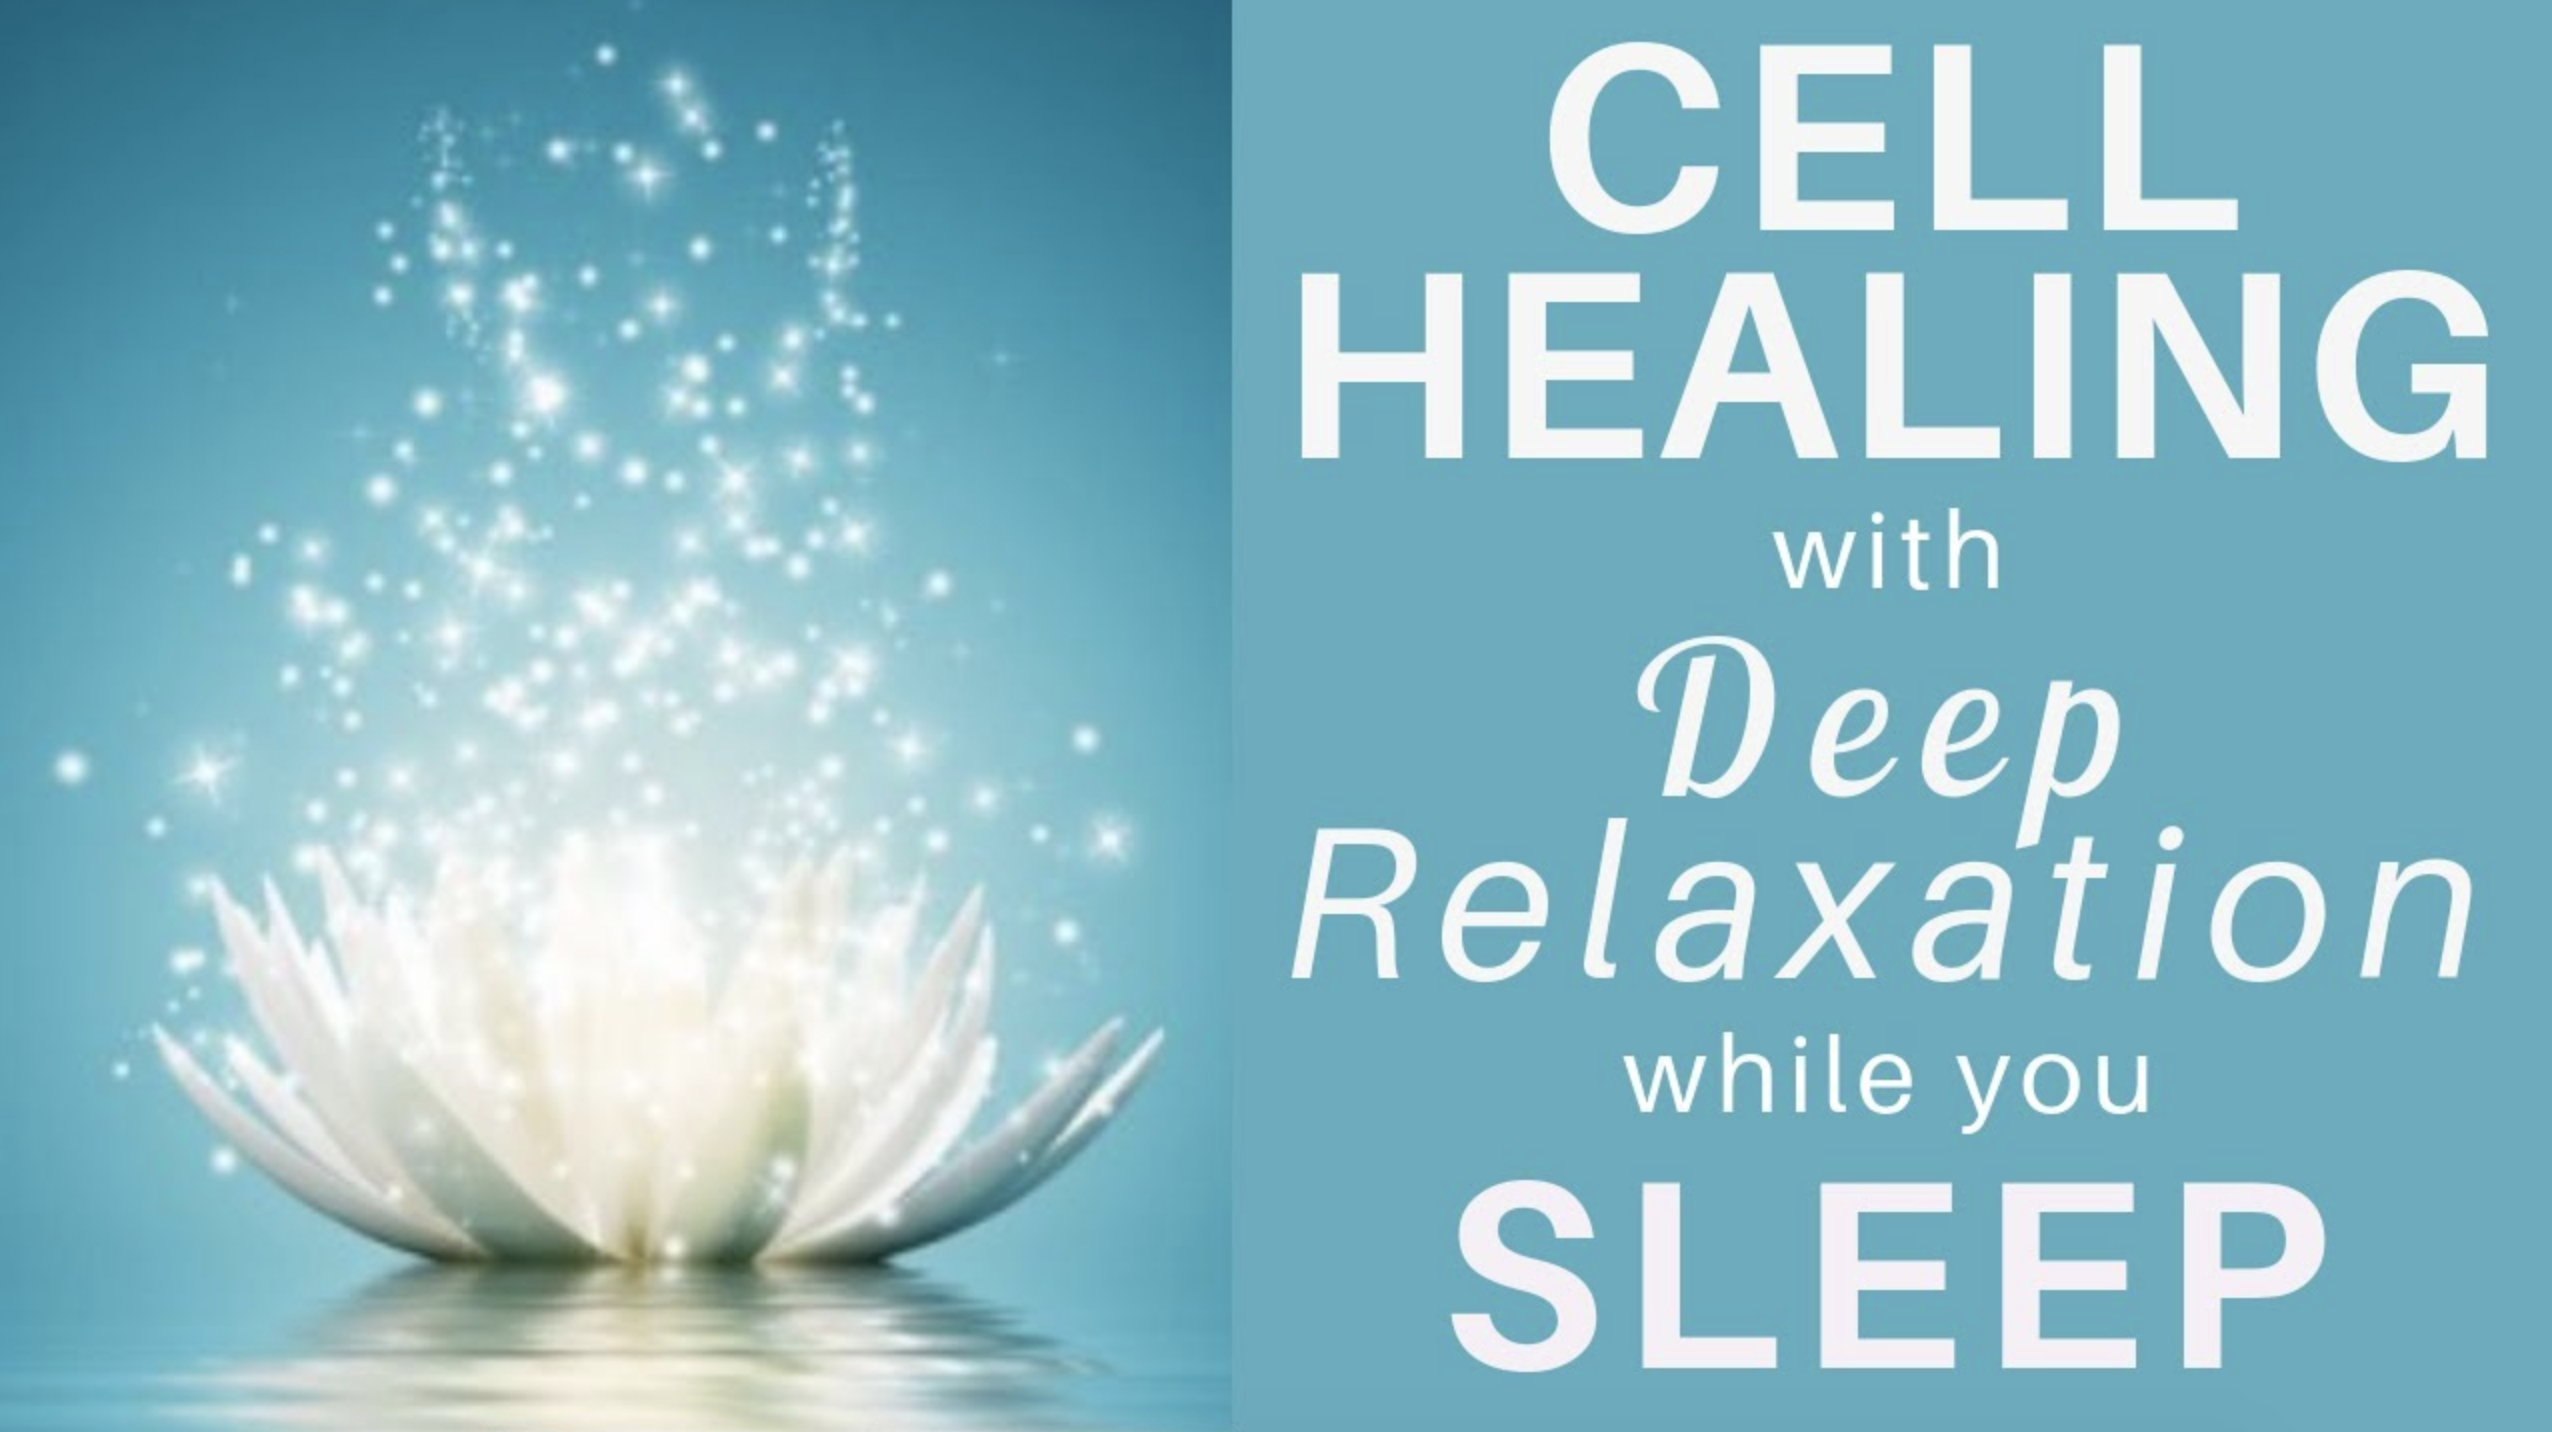 HEAL while you SLEEP ★ Cell Healing and Pain Relief Guided Meditation